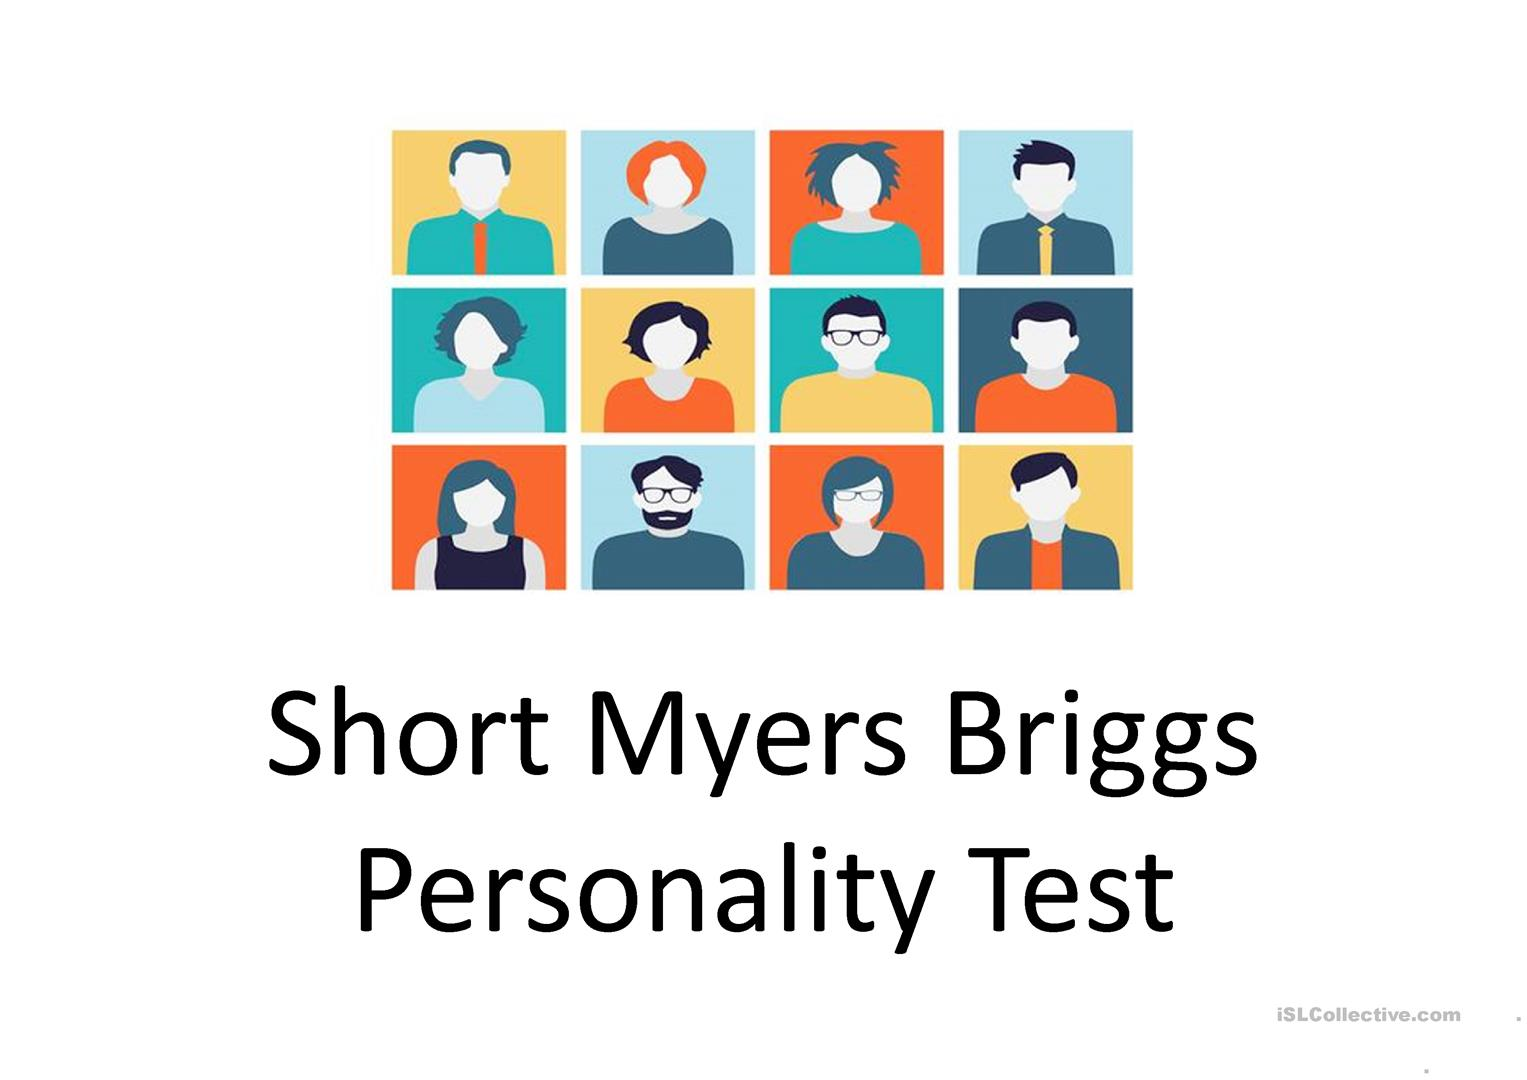 photo regarding Personality Tests Printable referred to as Brief Myers Briggs Persona Verify - English ESL Powerpoints